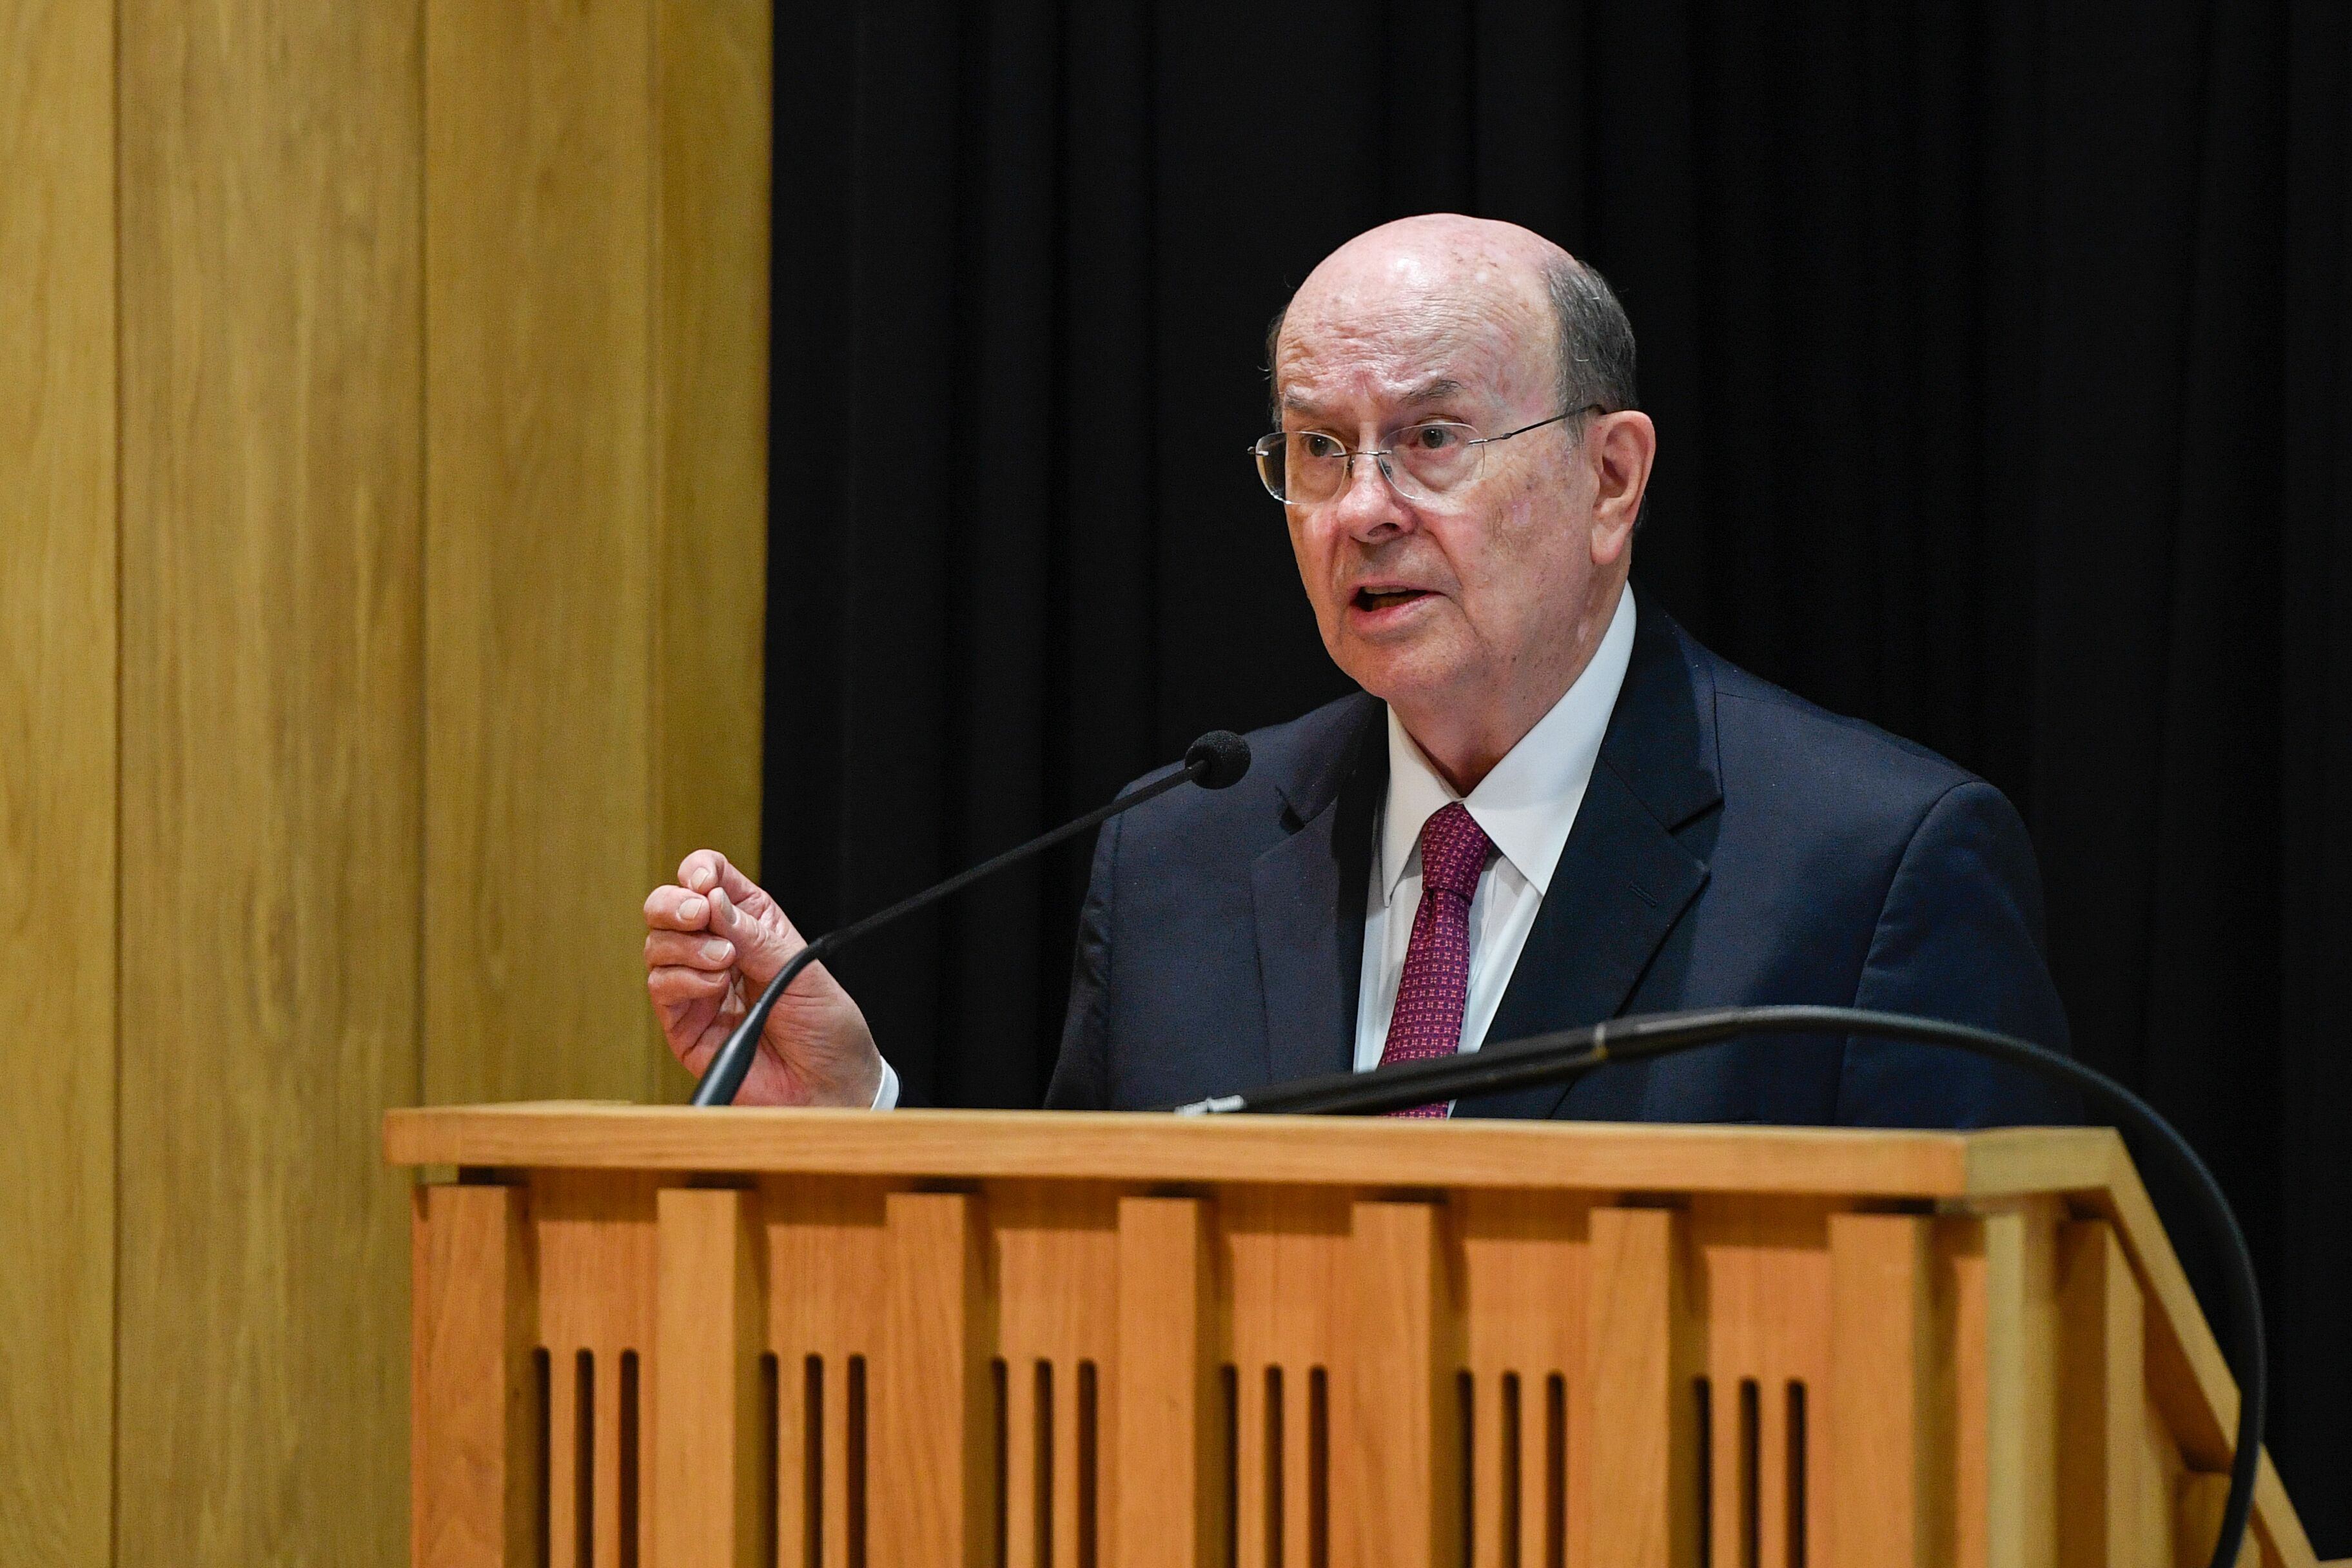 Elder Quentin L. Cook of the Quorum of the Twelve Apostles, addresses students, faculty, staff and guests at Pembroke College at the University of Oxford in Oxford, England, on Oct. 23, 2019.